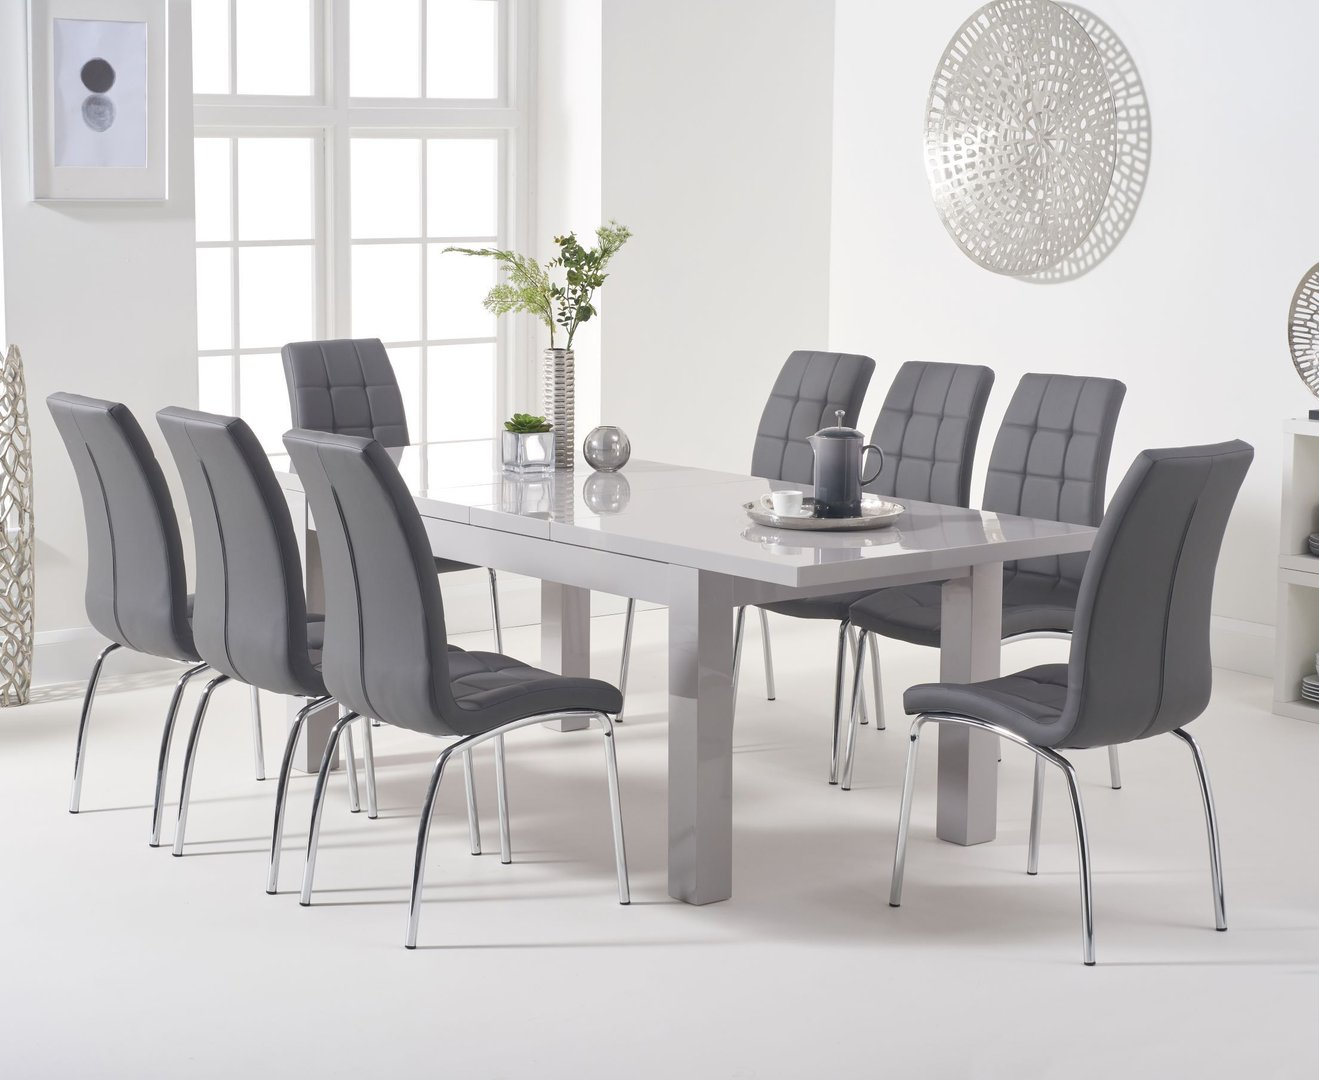 Extending Light Grey Gloss Dining Table 8 Chairs Homegenies